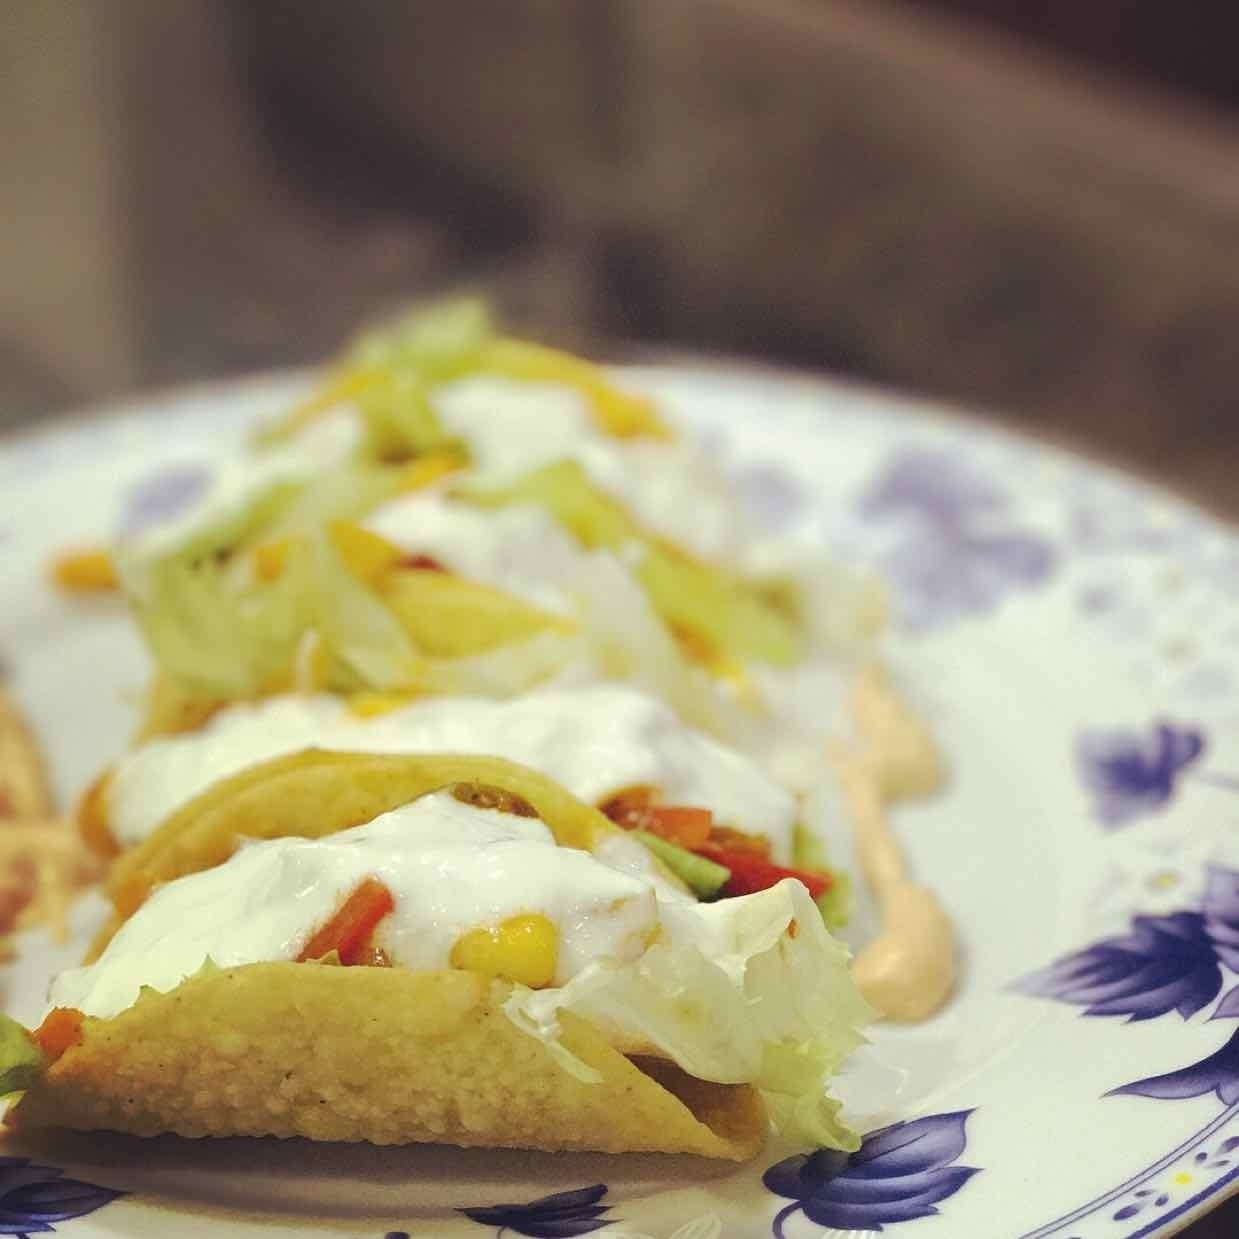 How to make Vegetable tacos with sour cream